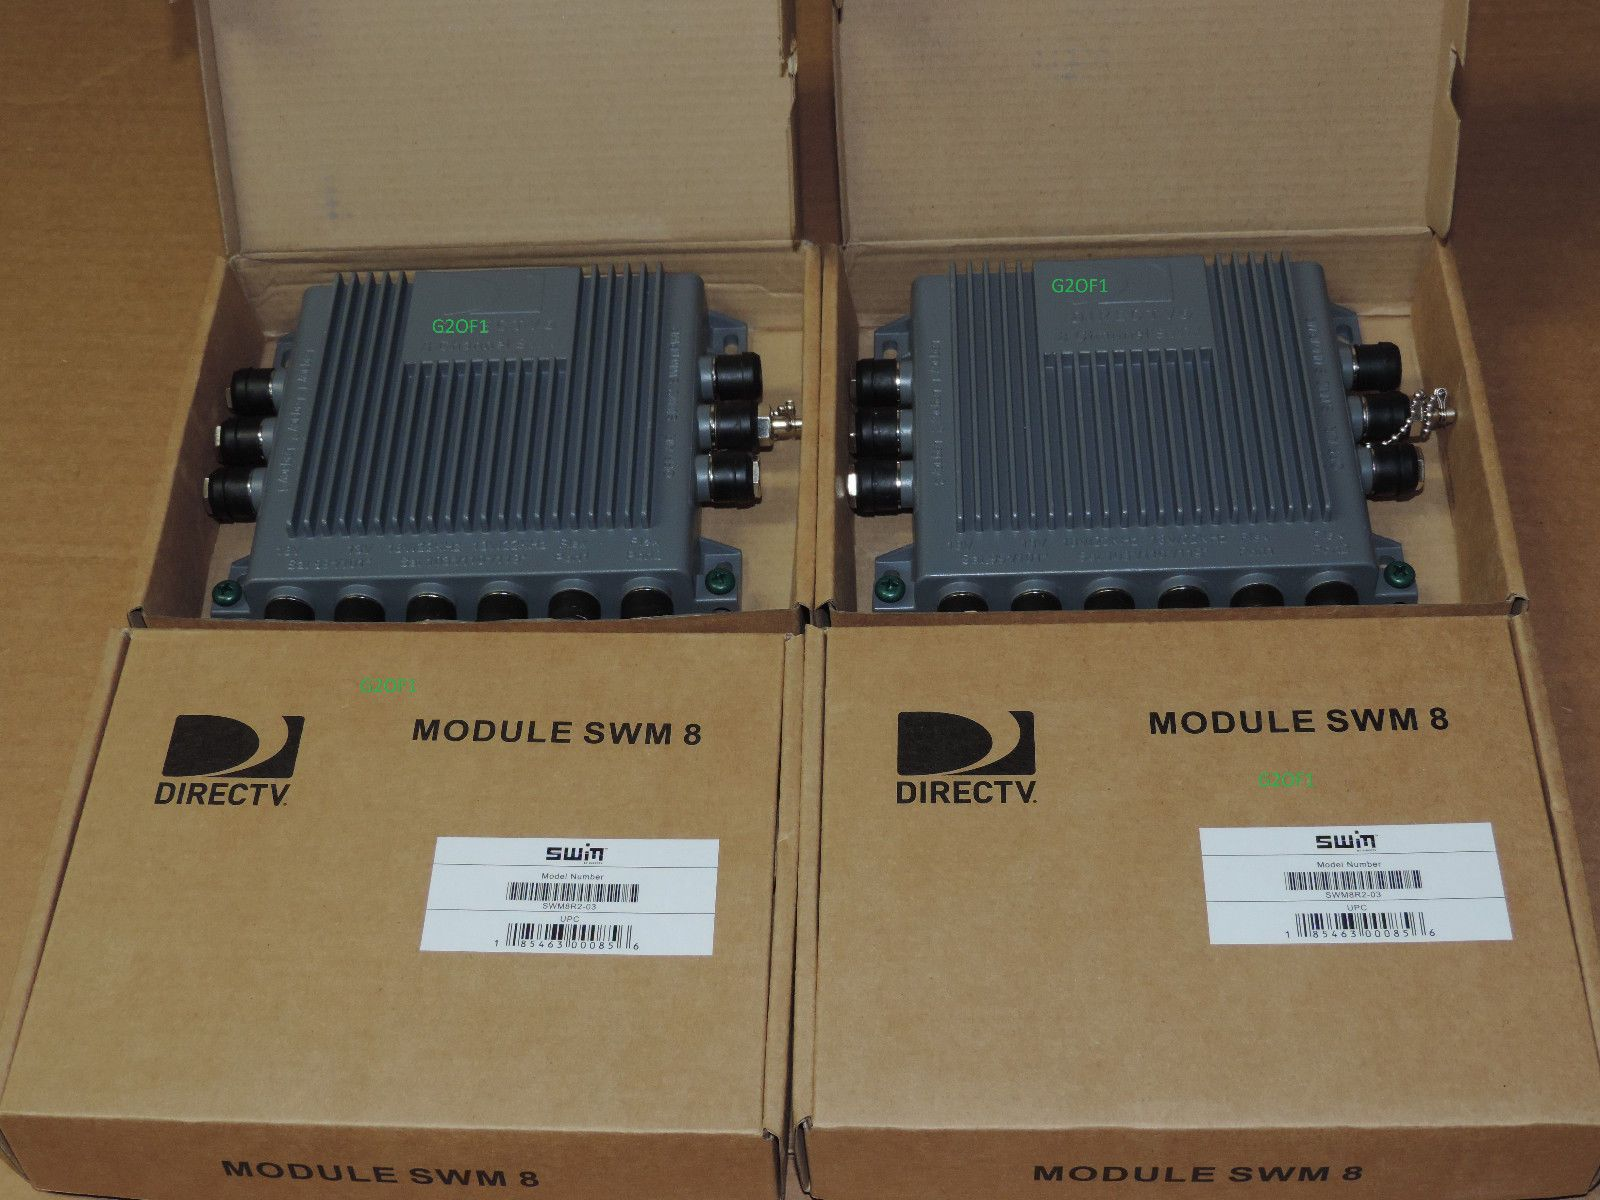 Satellite Signal Multiswitches: Lot Of 4 Directv Swm 8 Multiswitch Swm 8 Swm Whole Home Green New -> BUY IT NOW ONLY: $99.95 on eBay!